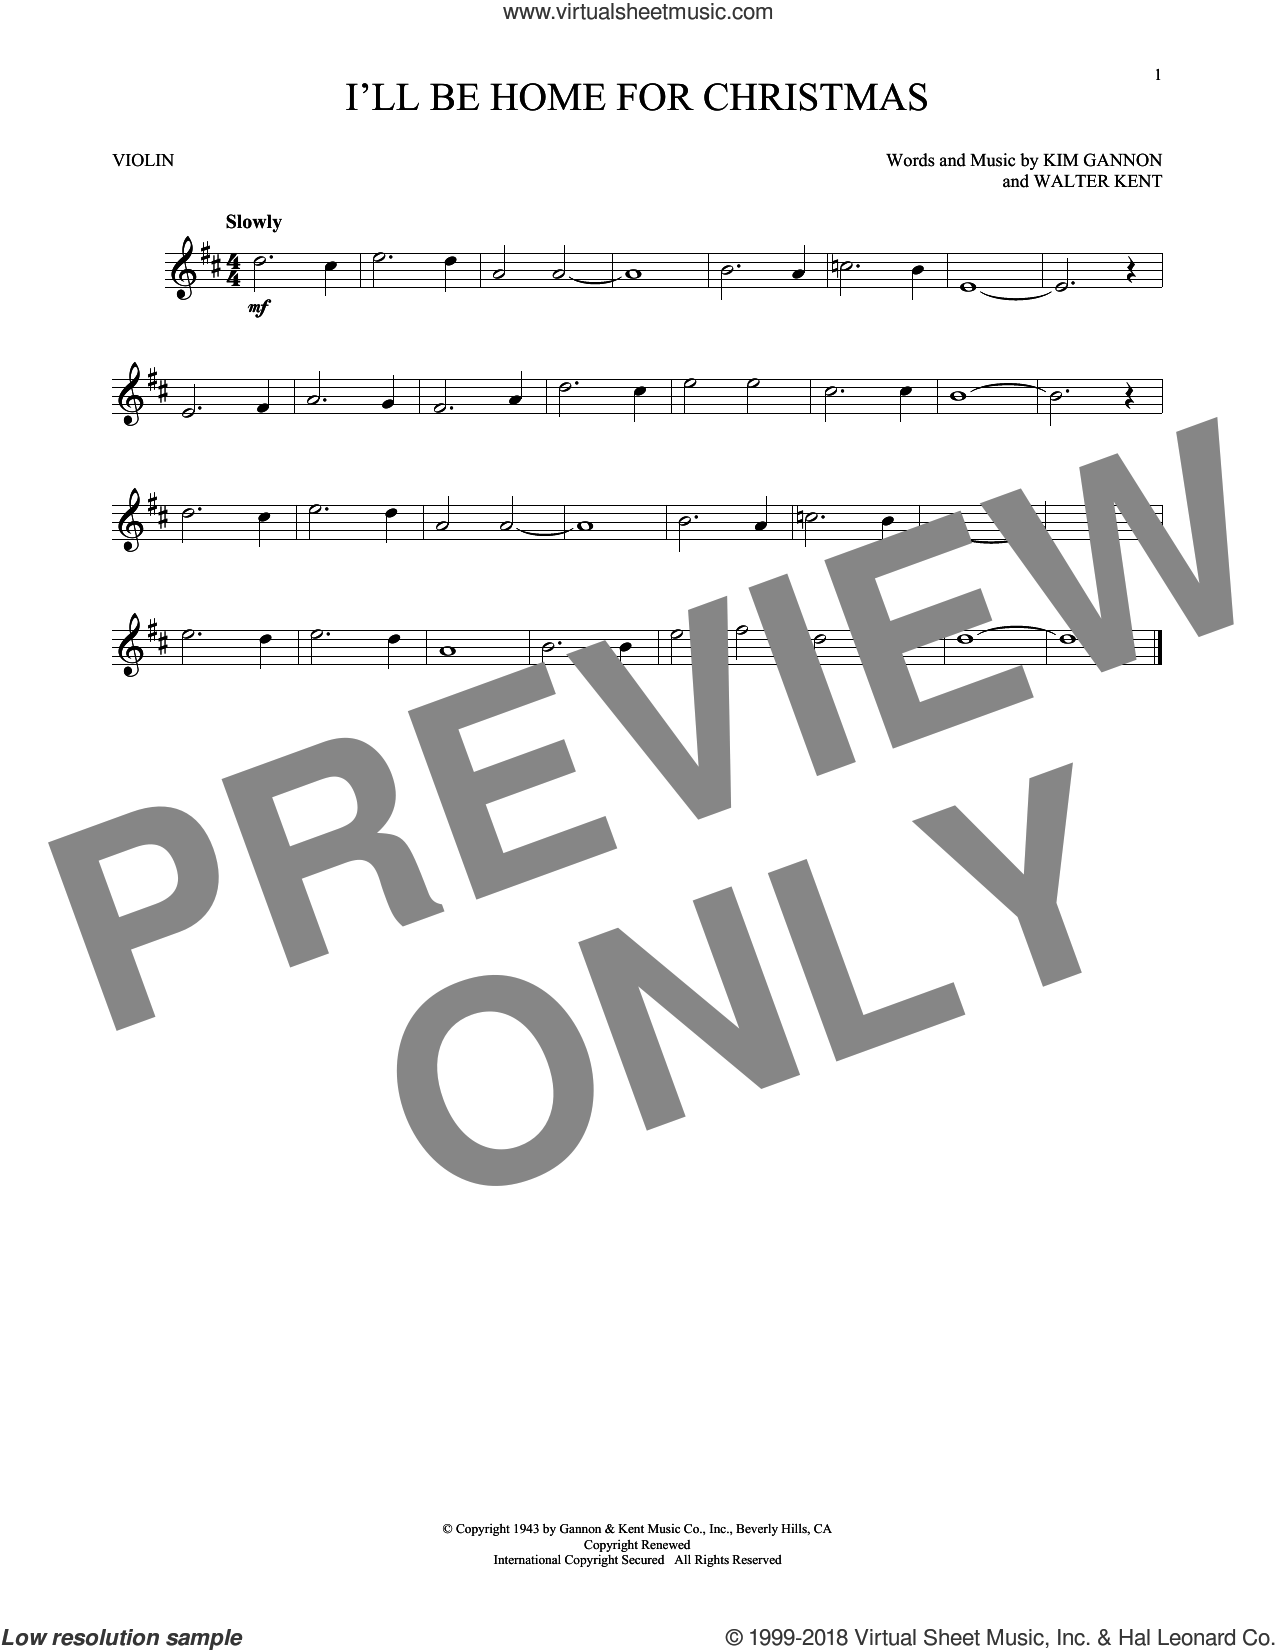 I'll Be Home For Christmas sheet music for violin solo by Bing Crosby, Kim Gannon and Walter Kent, intermediate skill level